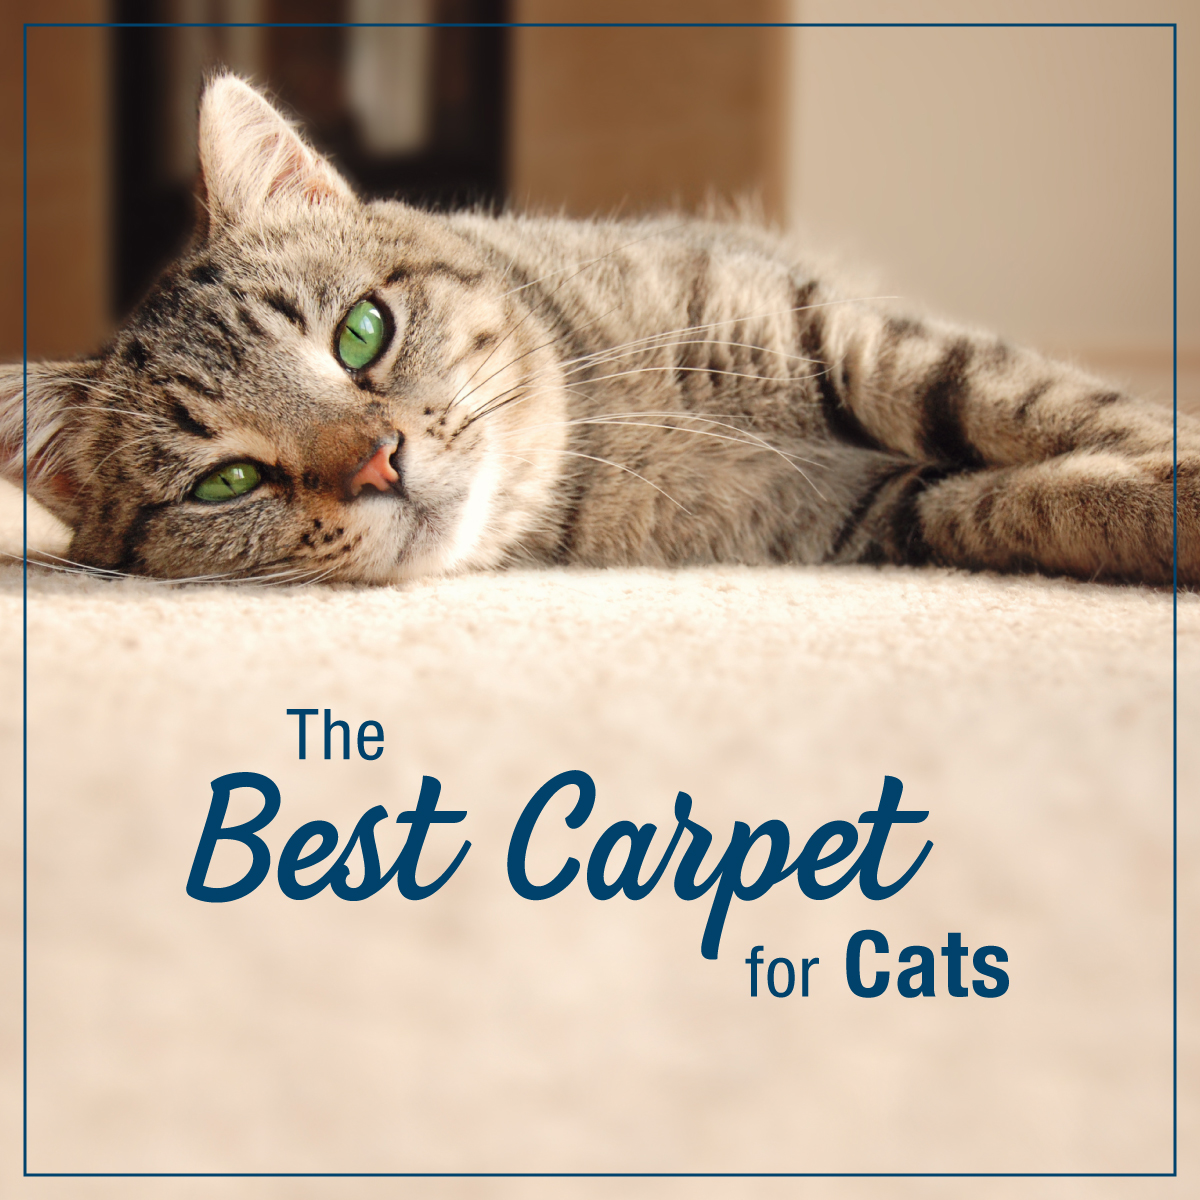 Best_Carpet_for_Cats